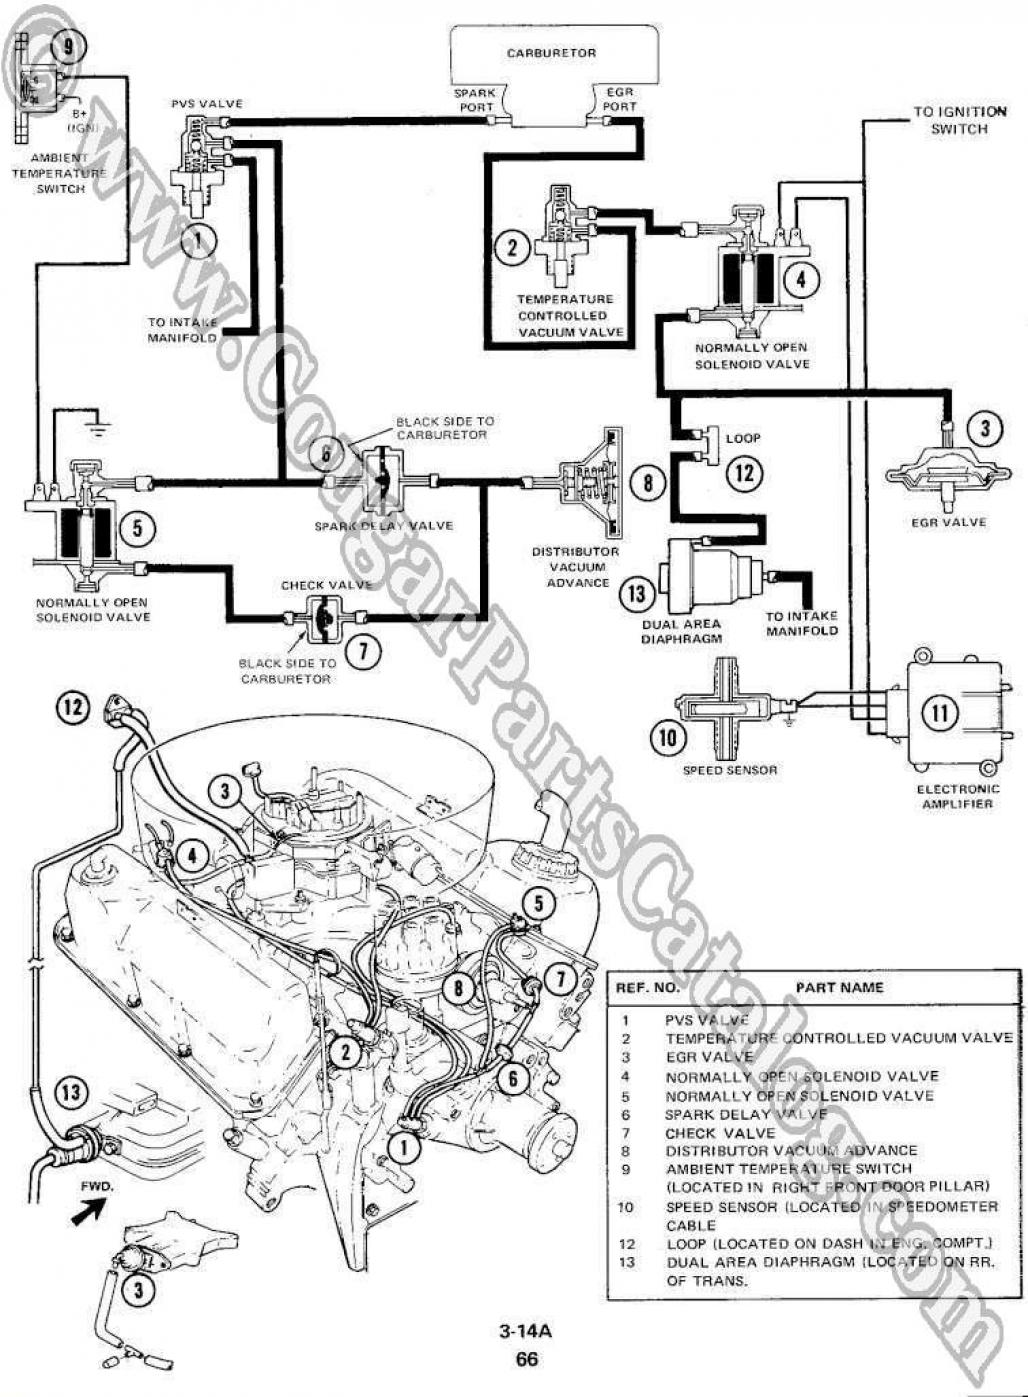 hight resolution of shop manual engine emission system diagnosis repro 1973 1973 ford torino 1973 mercury cougar wiring